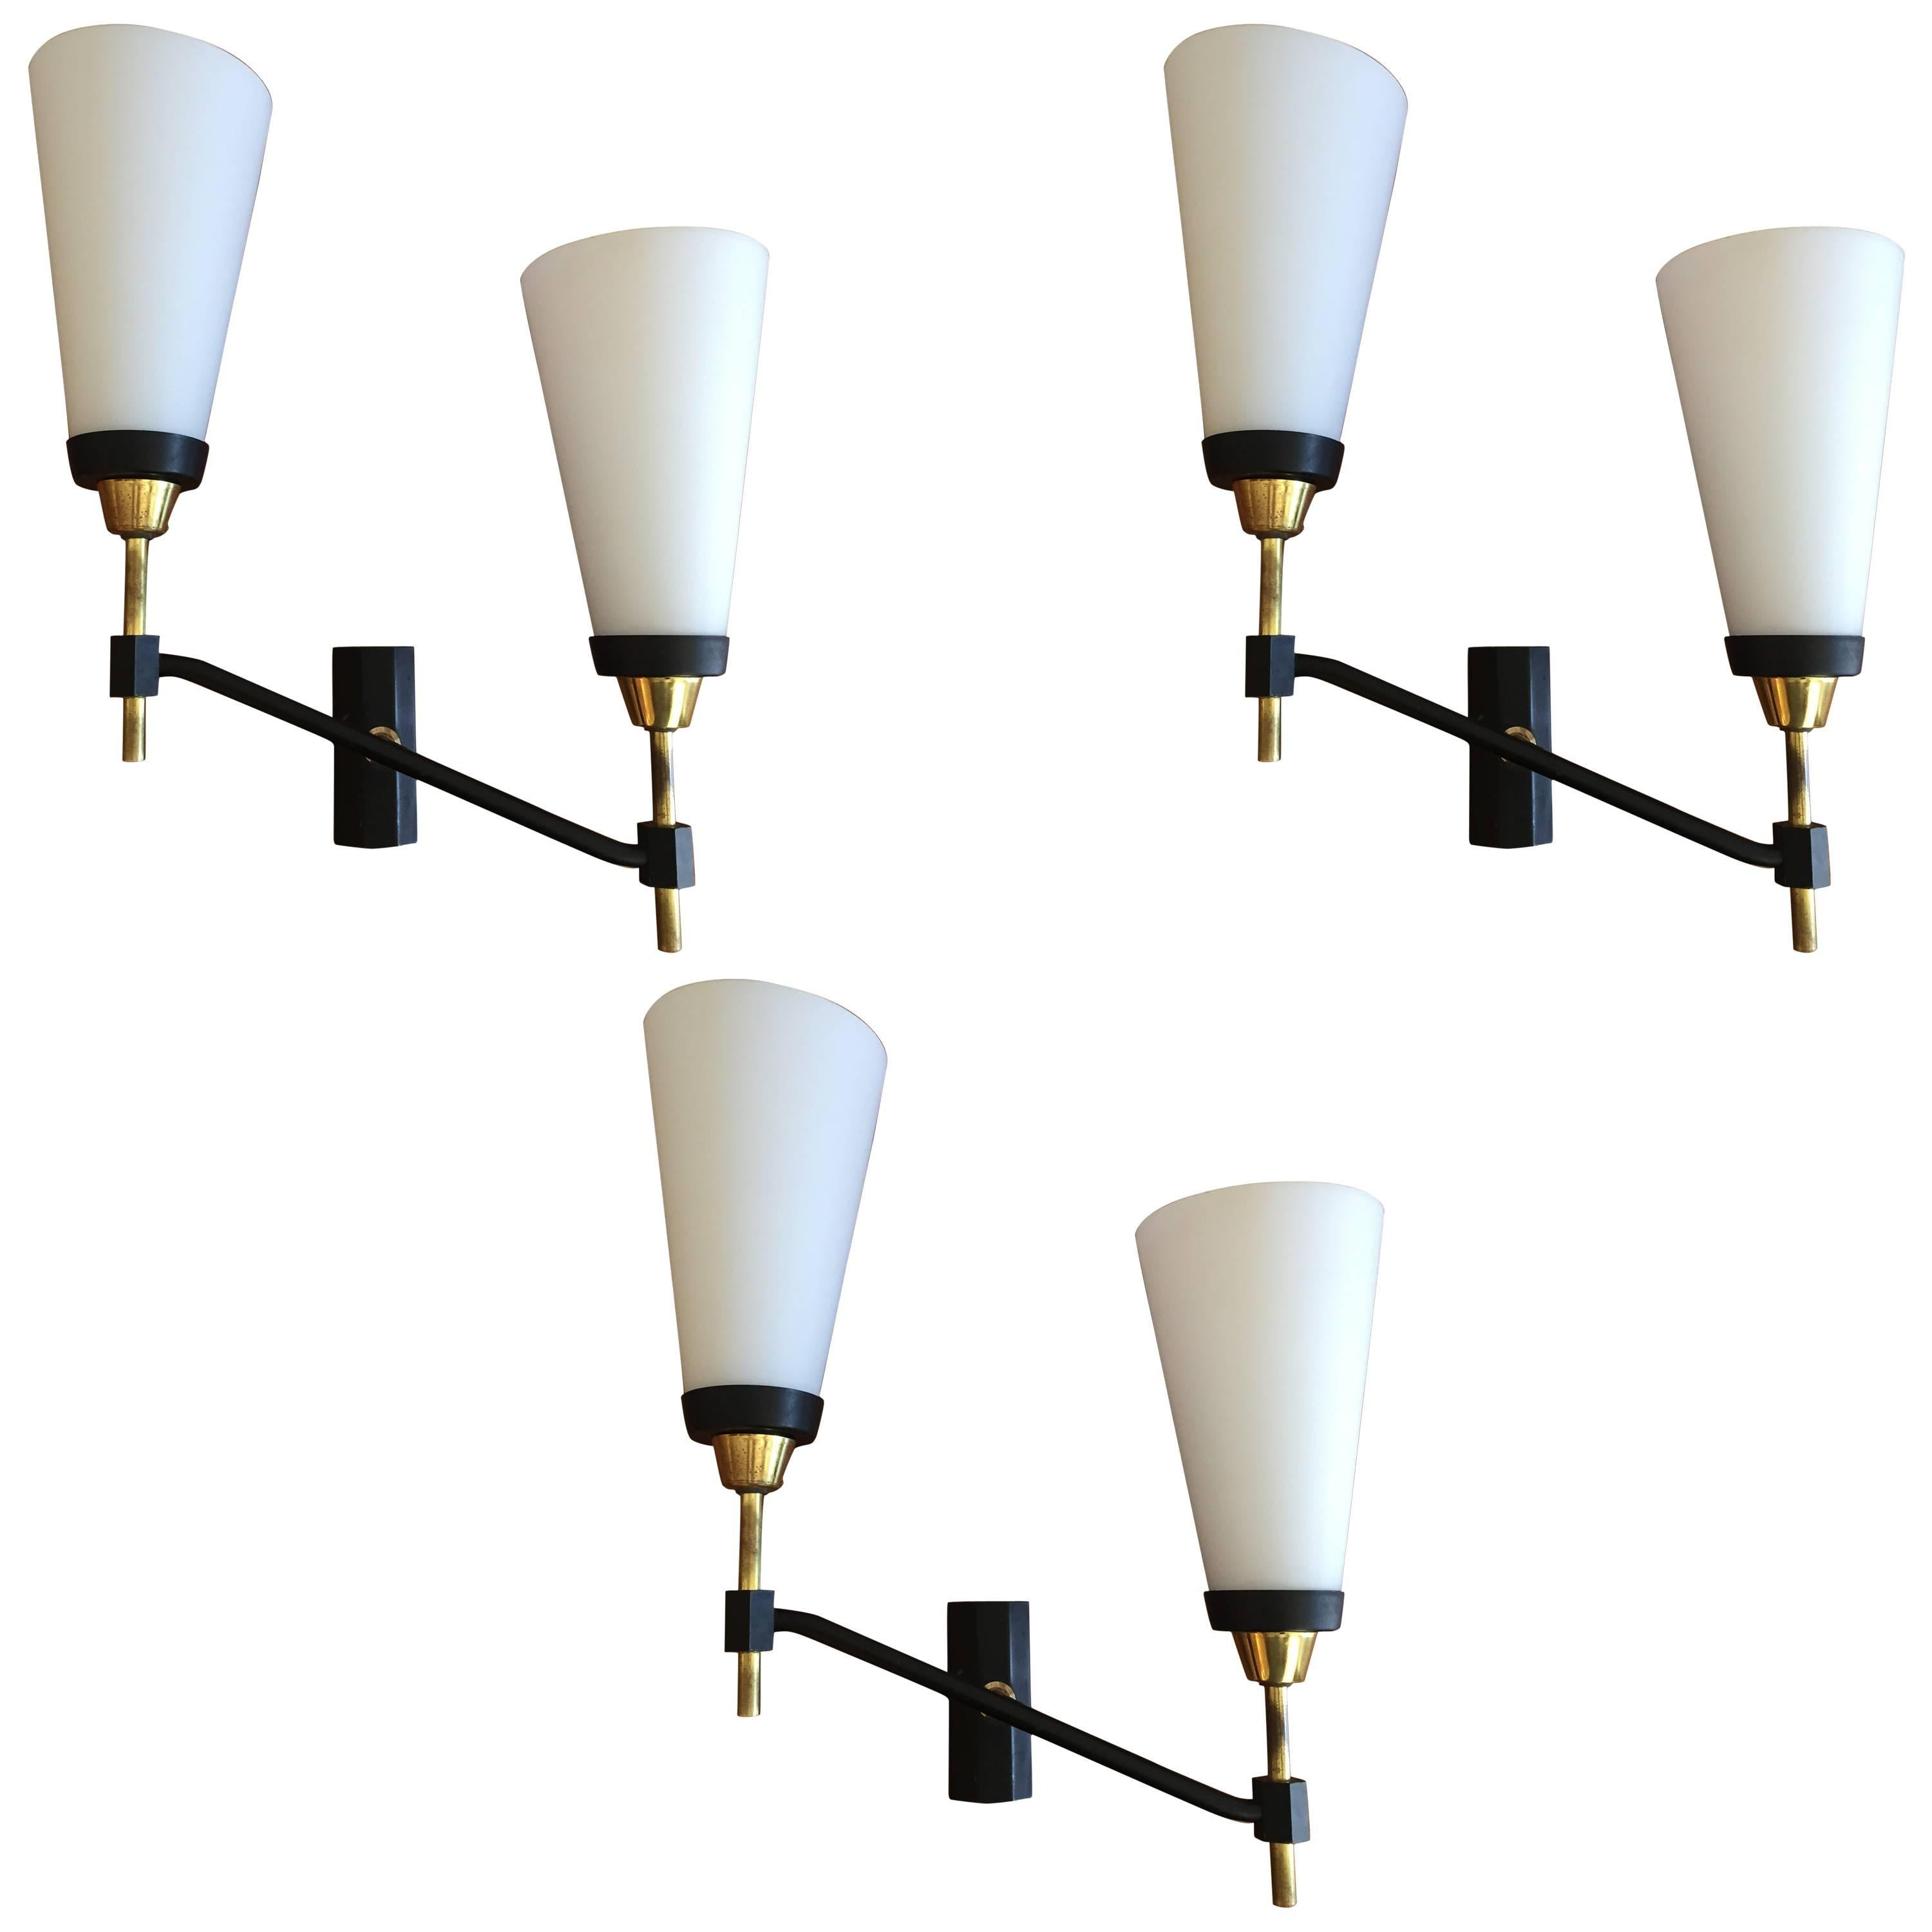 Large Set of Three French 1950s Lunel Wall Lights